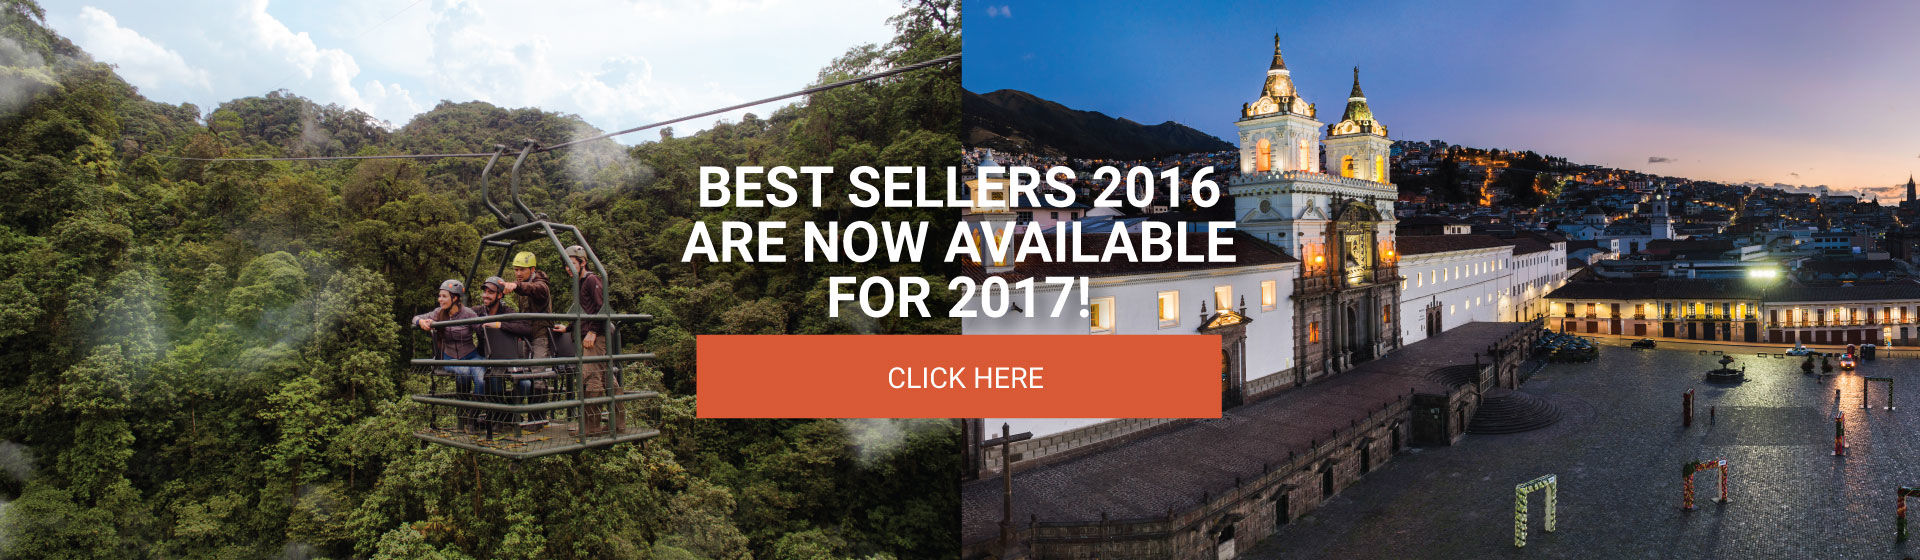 quito tours - best sellers